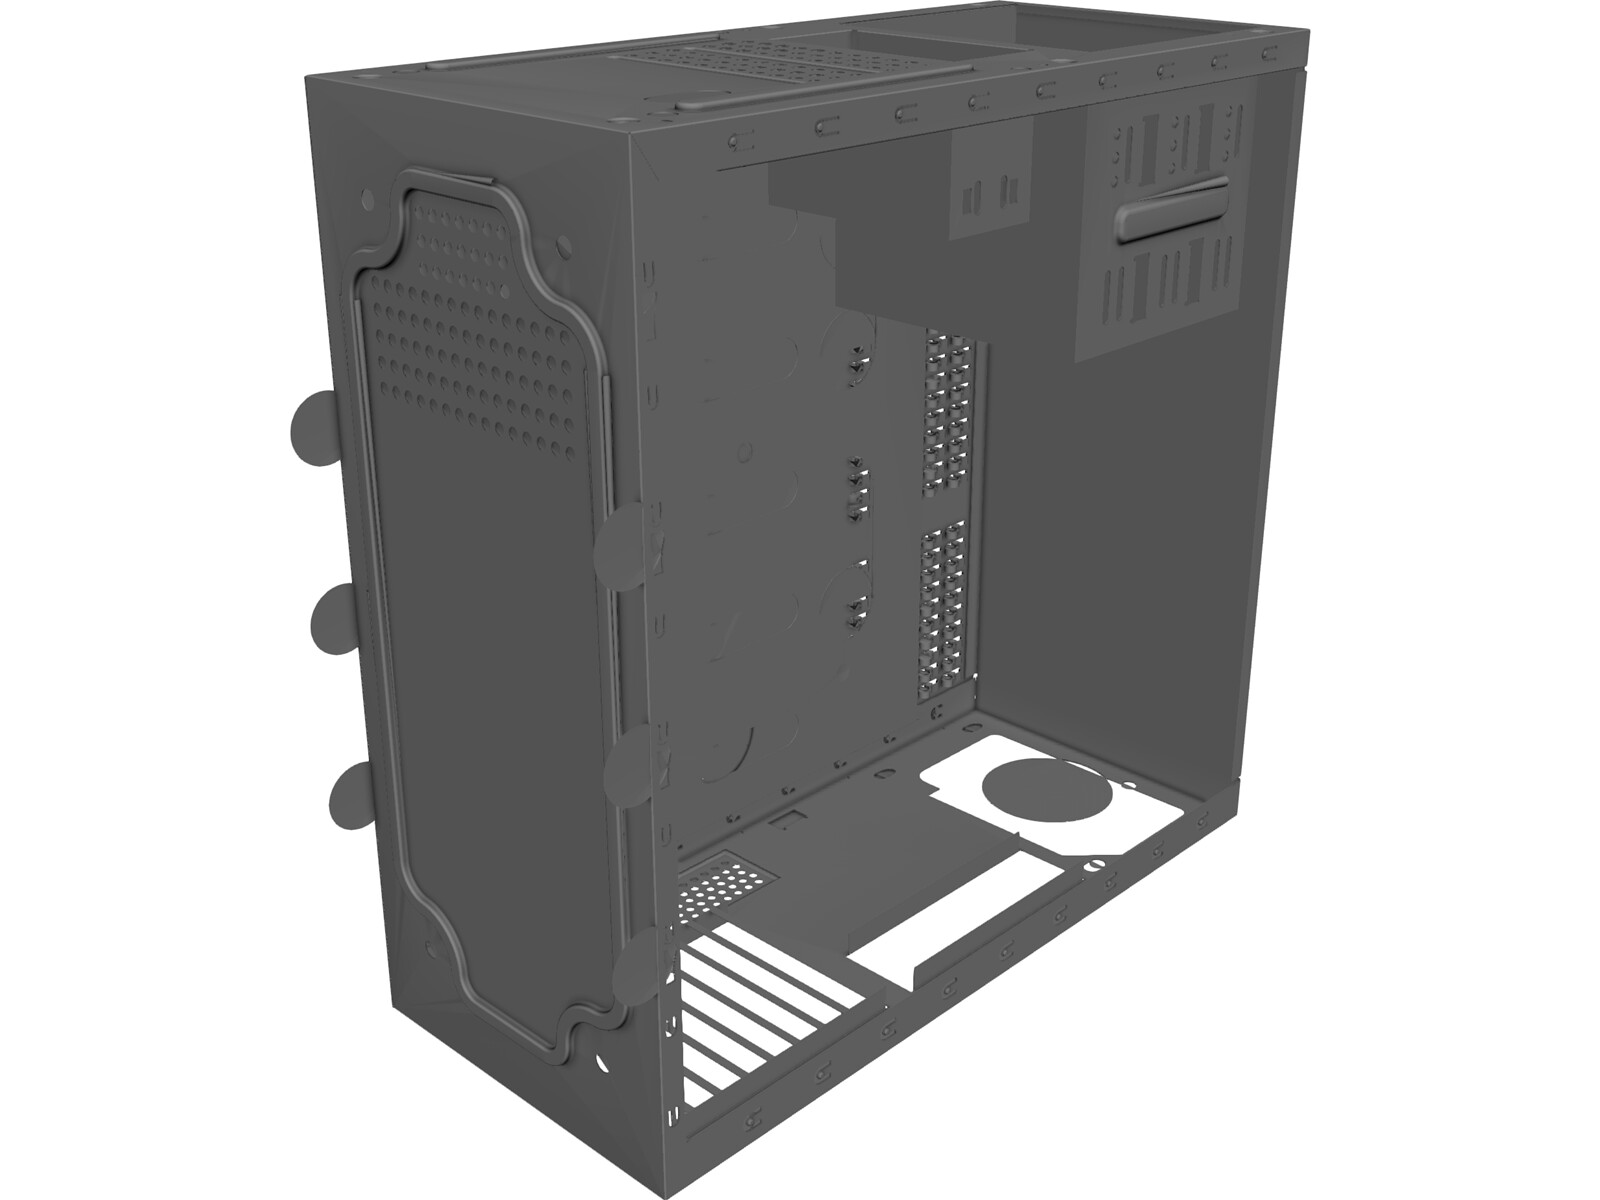 Computer Tower Case 3D CAD Model